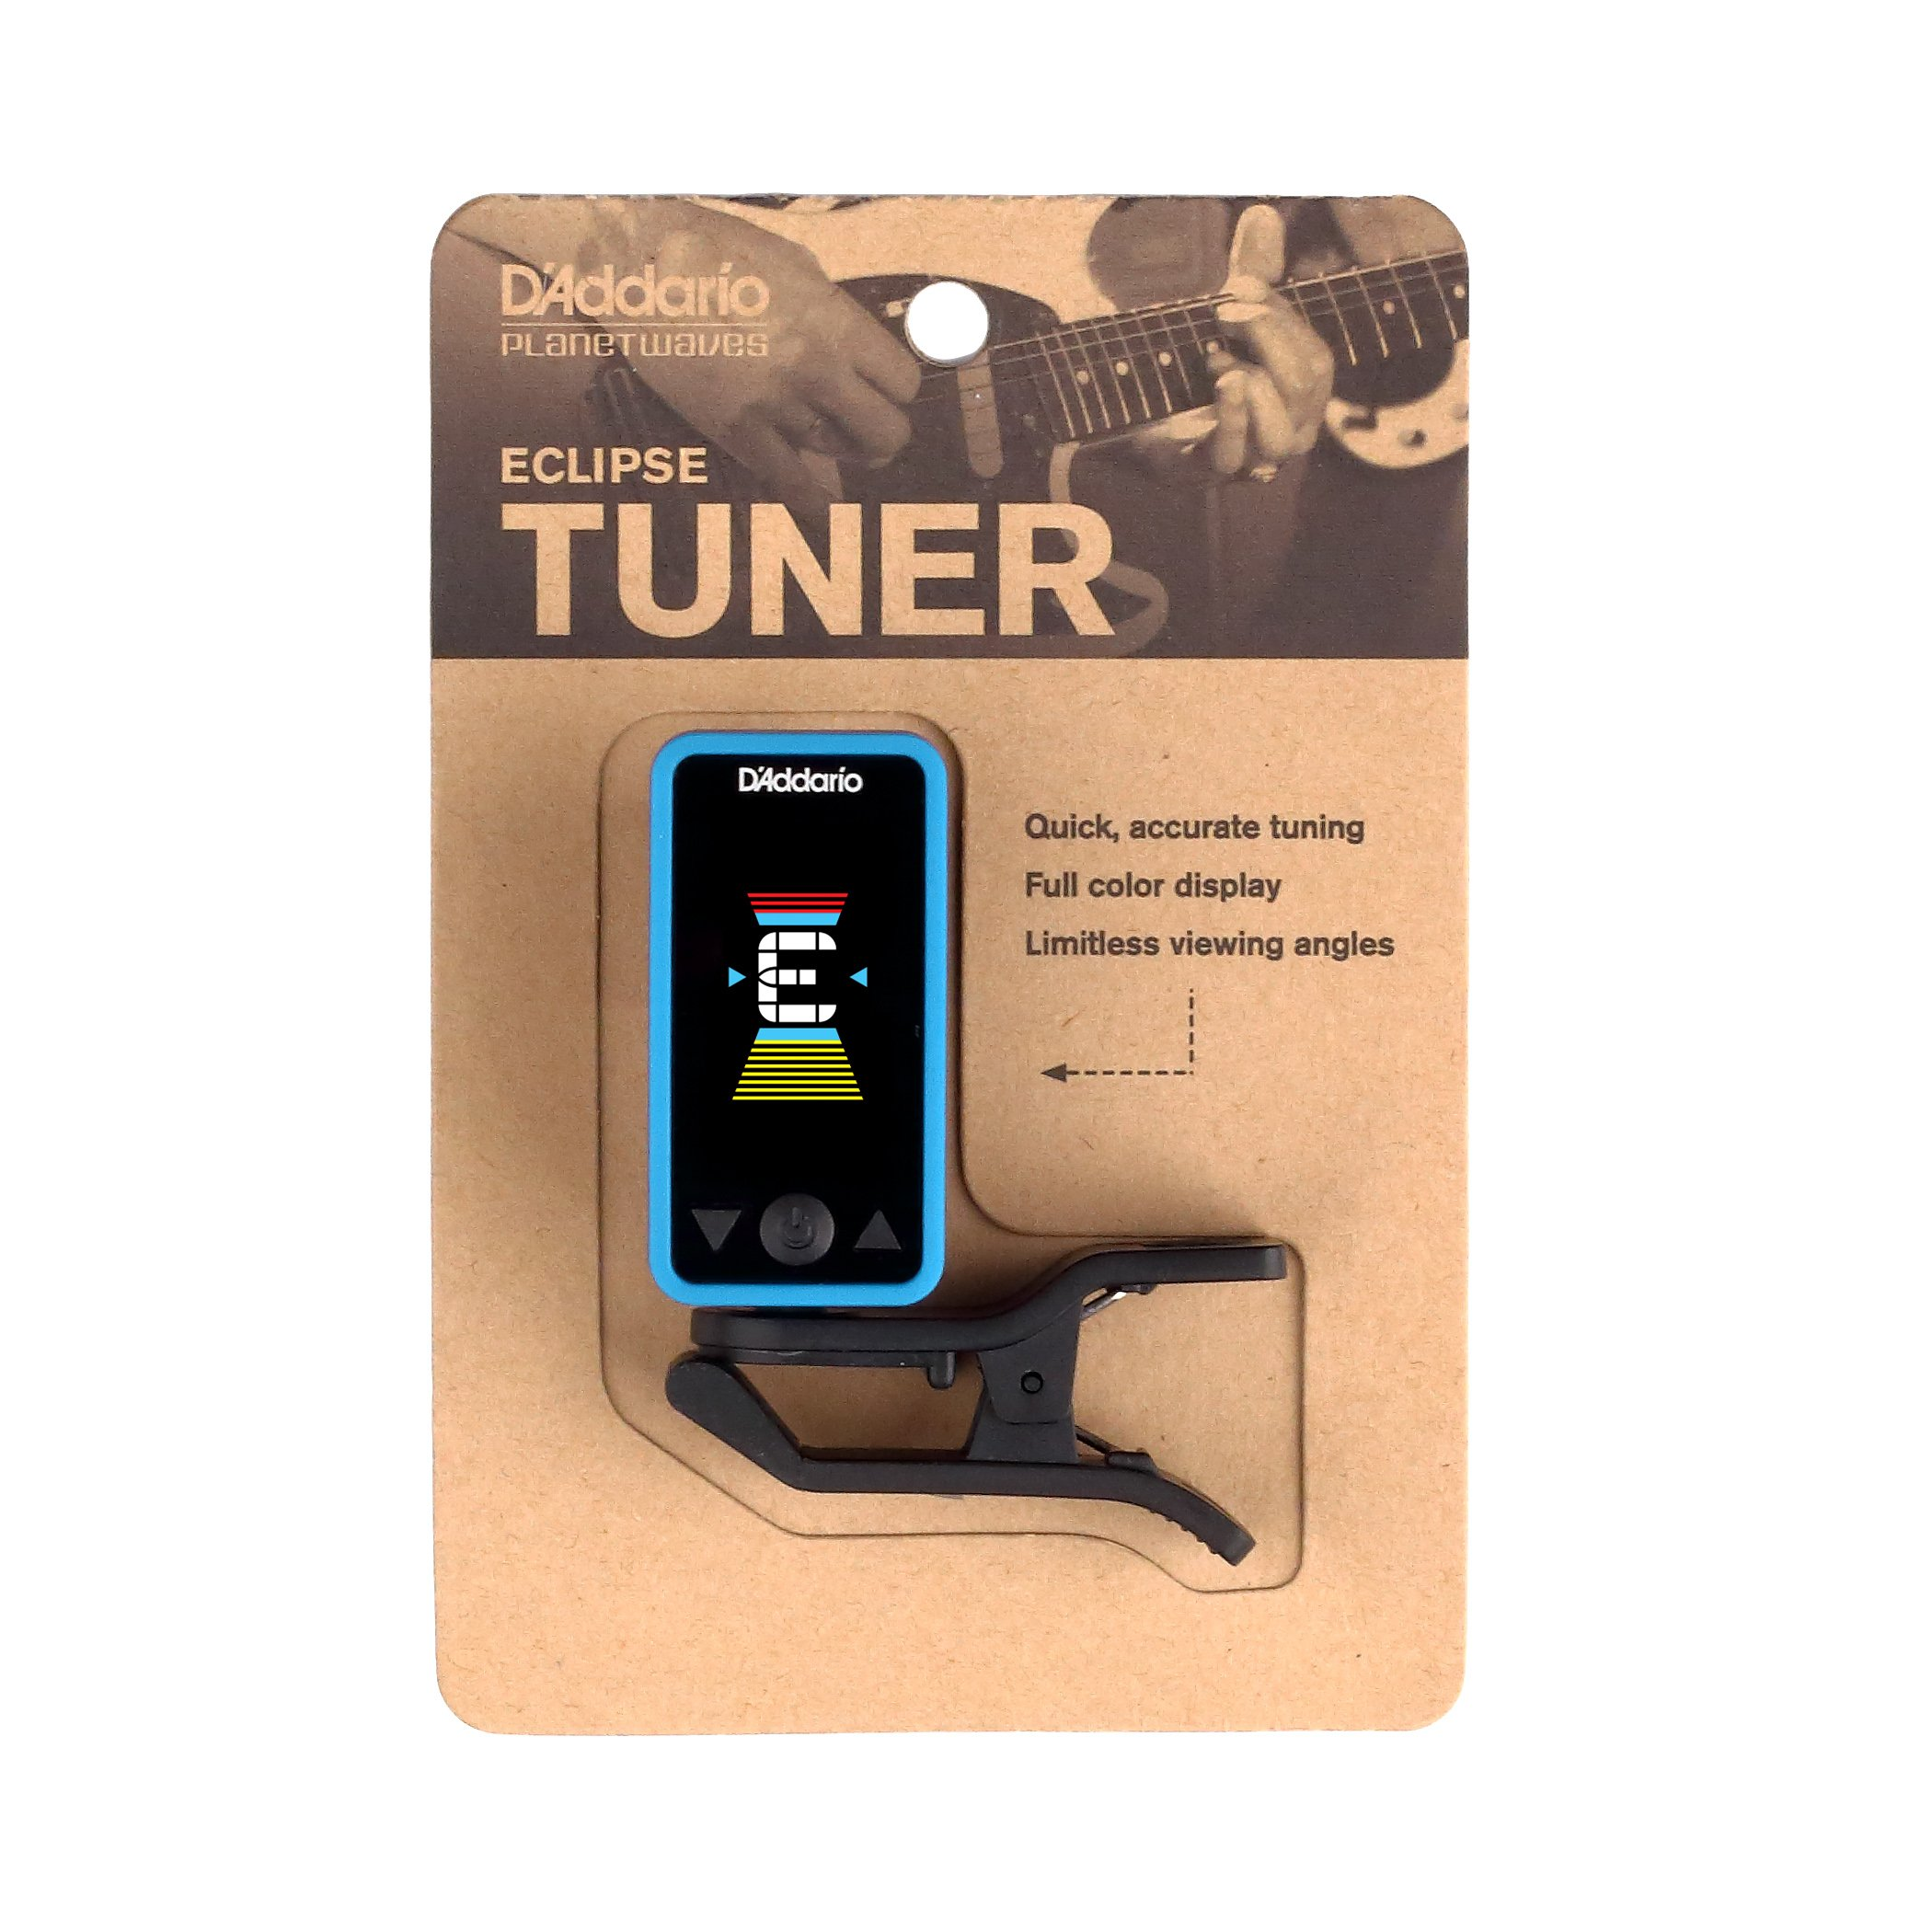 D'Addario Accessories Eclipse Headstock Tuner, Blue by Planet Waves (Image #5)